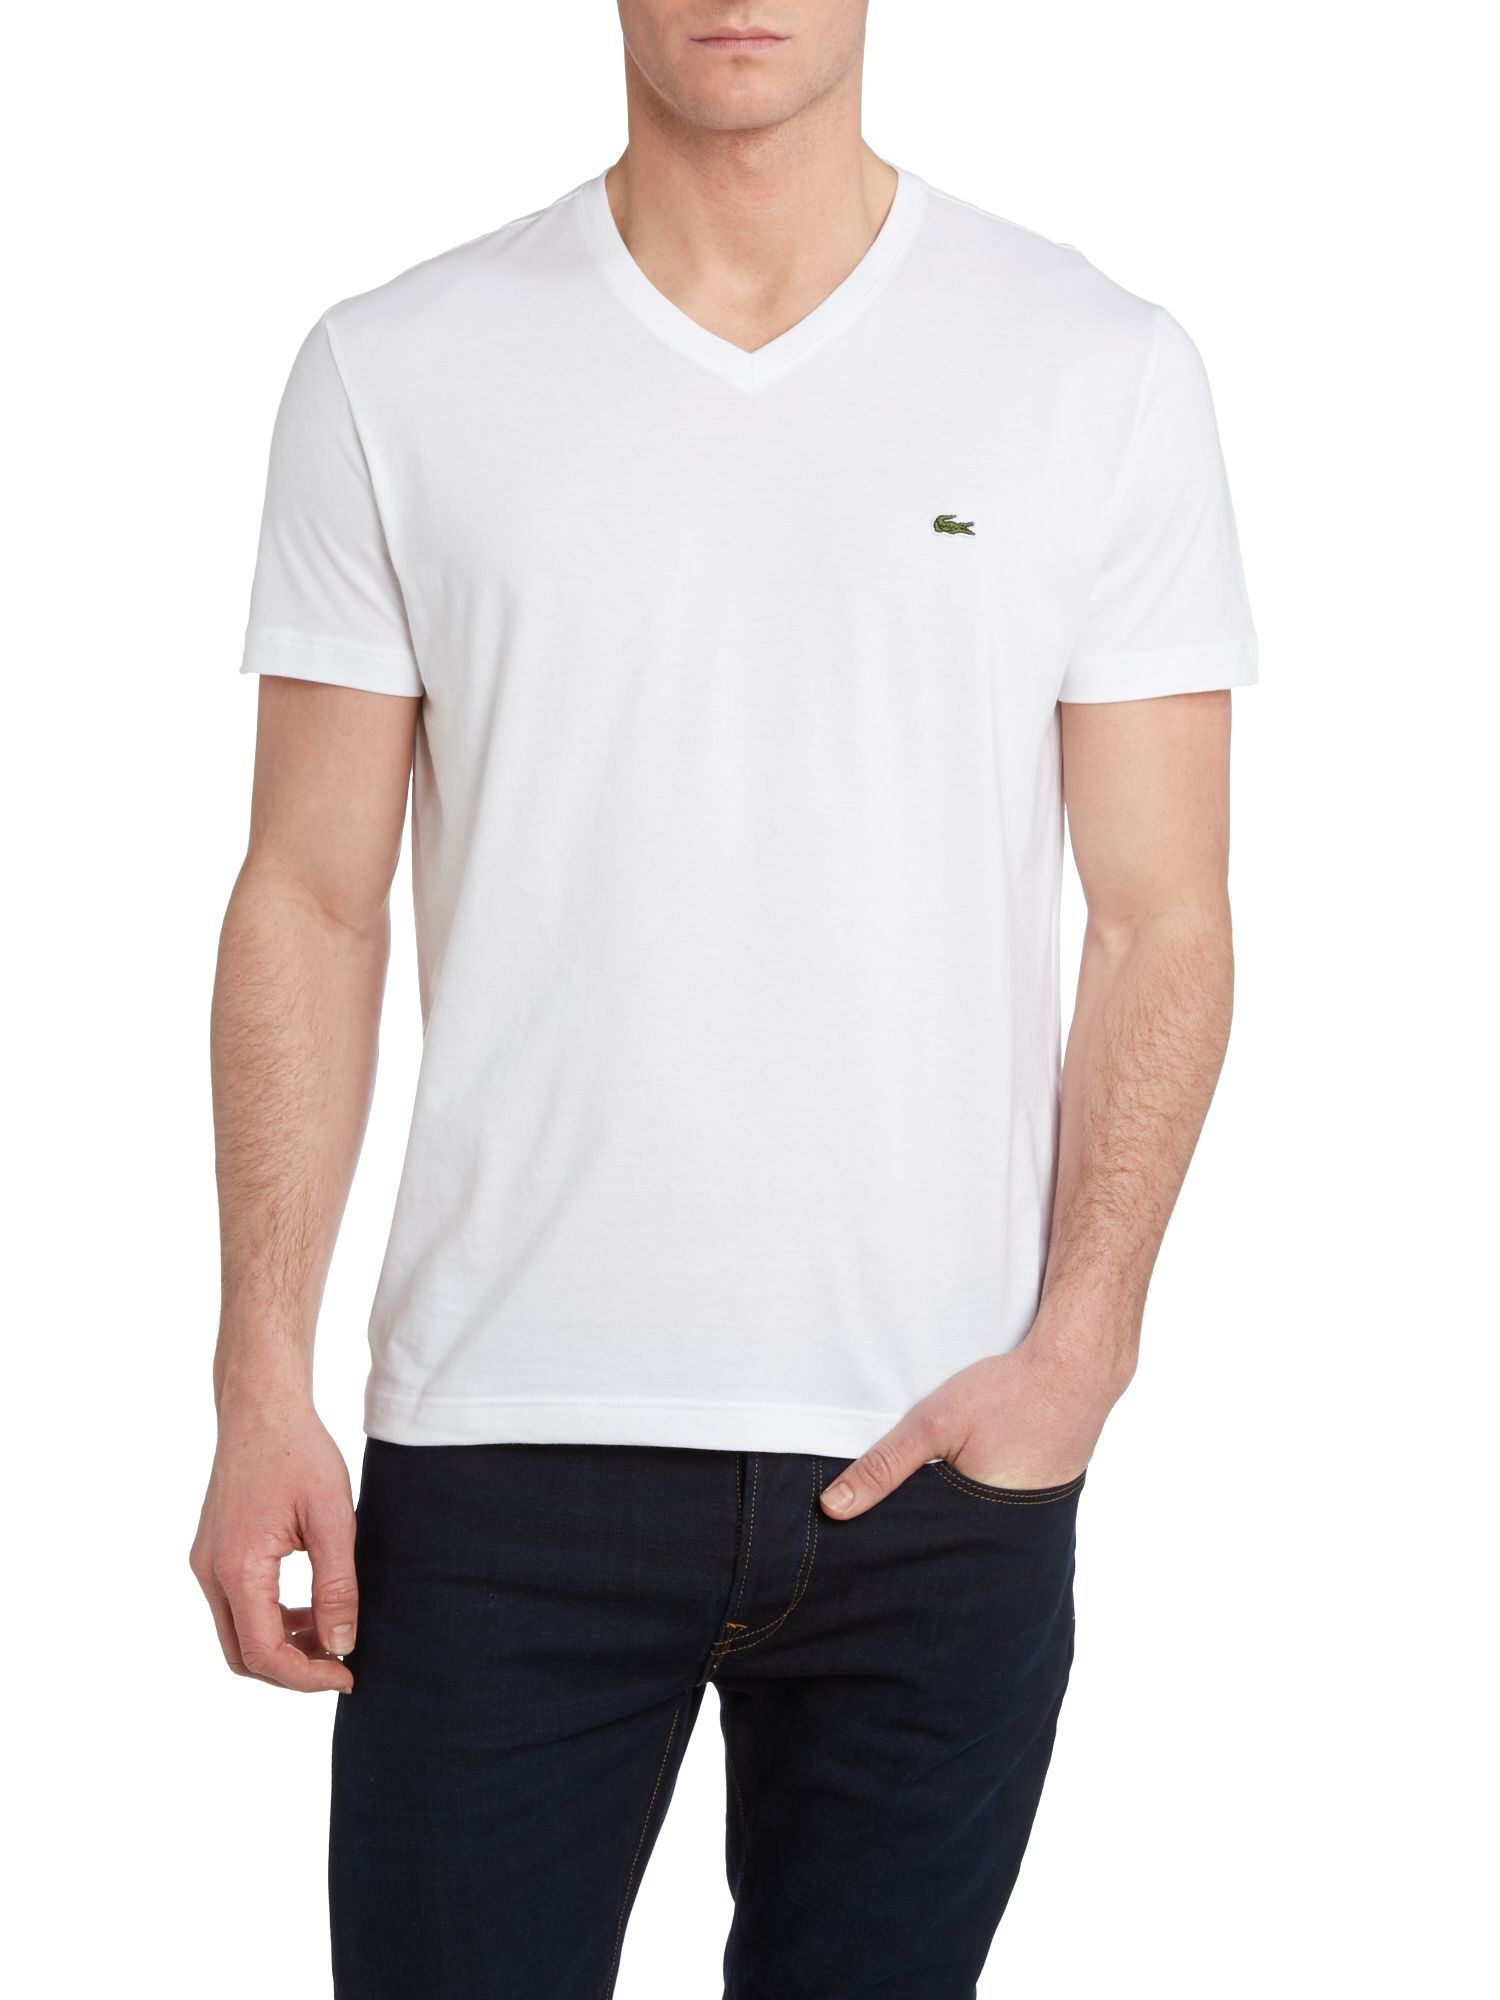 Cotton mens tee shirt